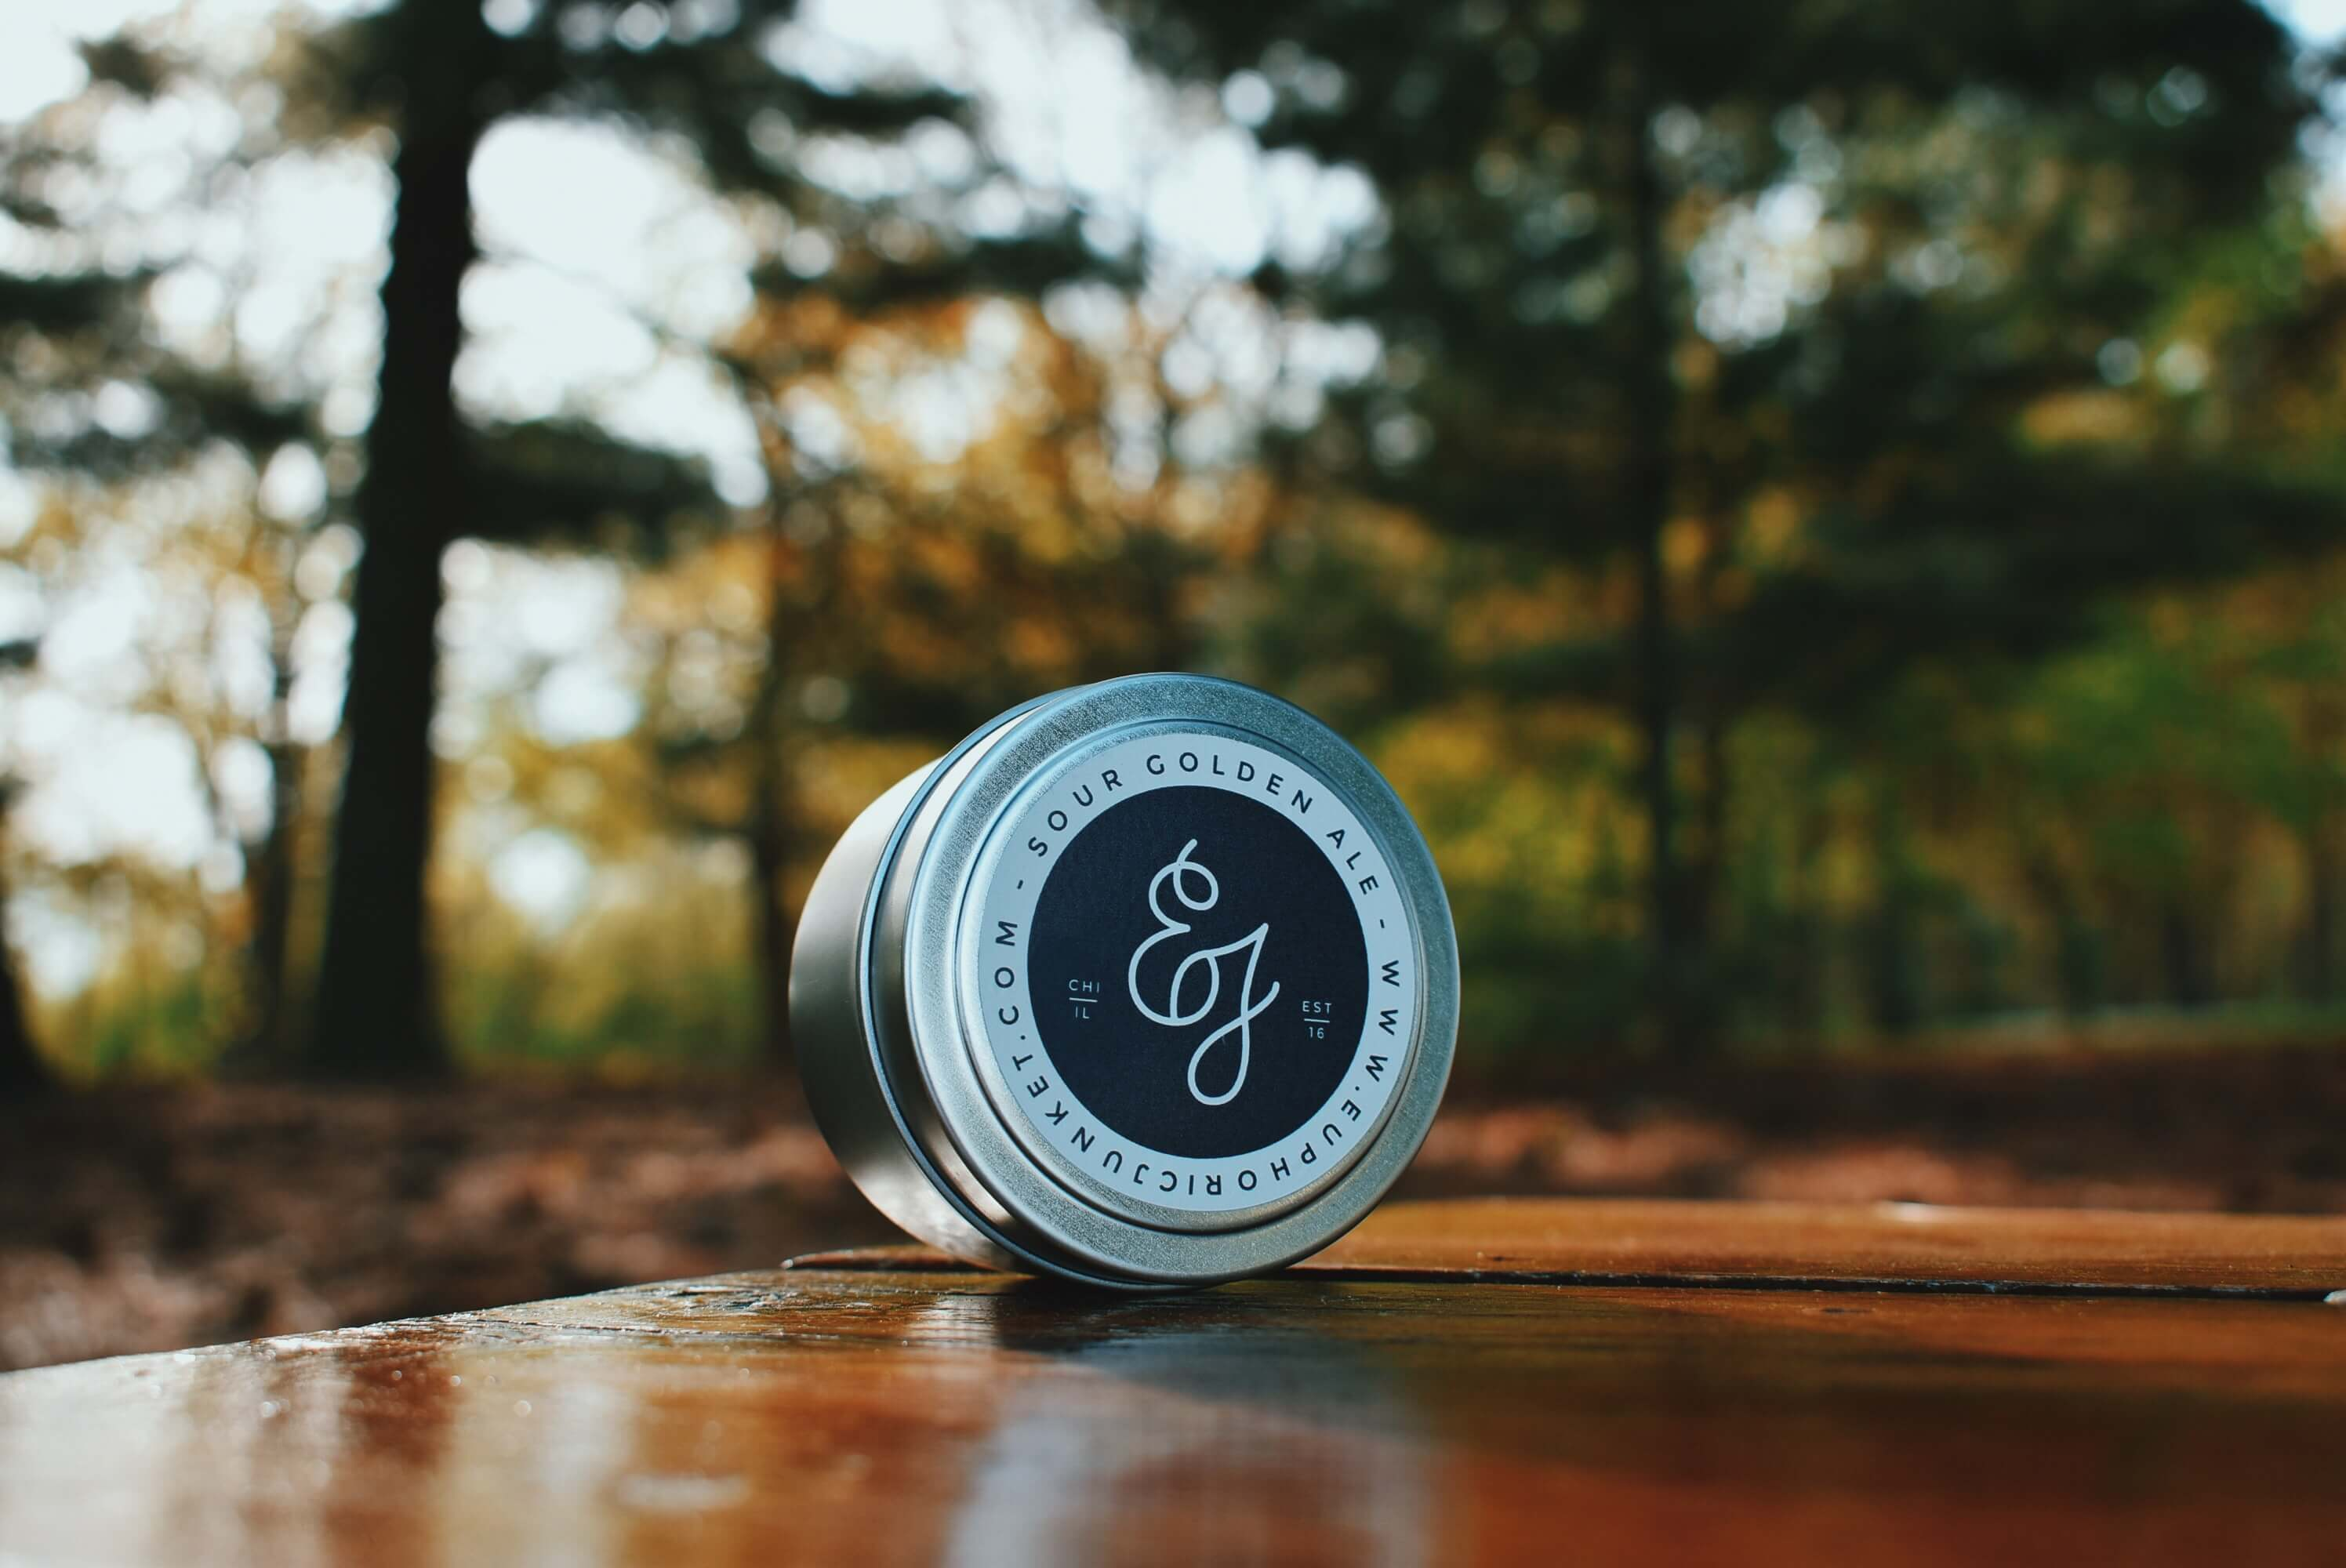 Sour Golden Ale Travel Candle